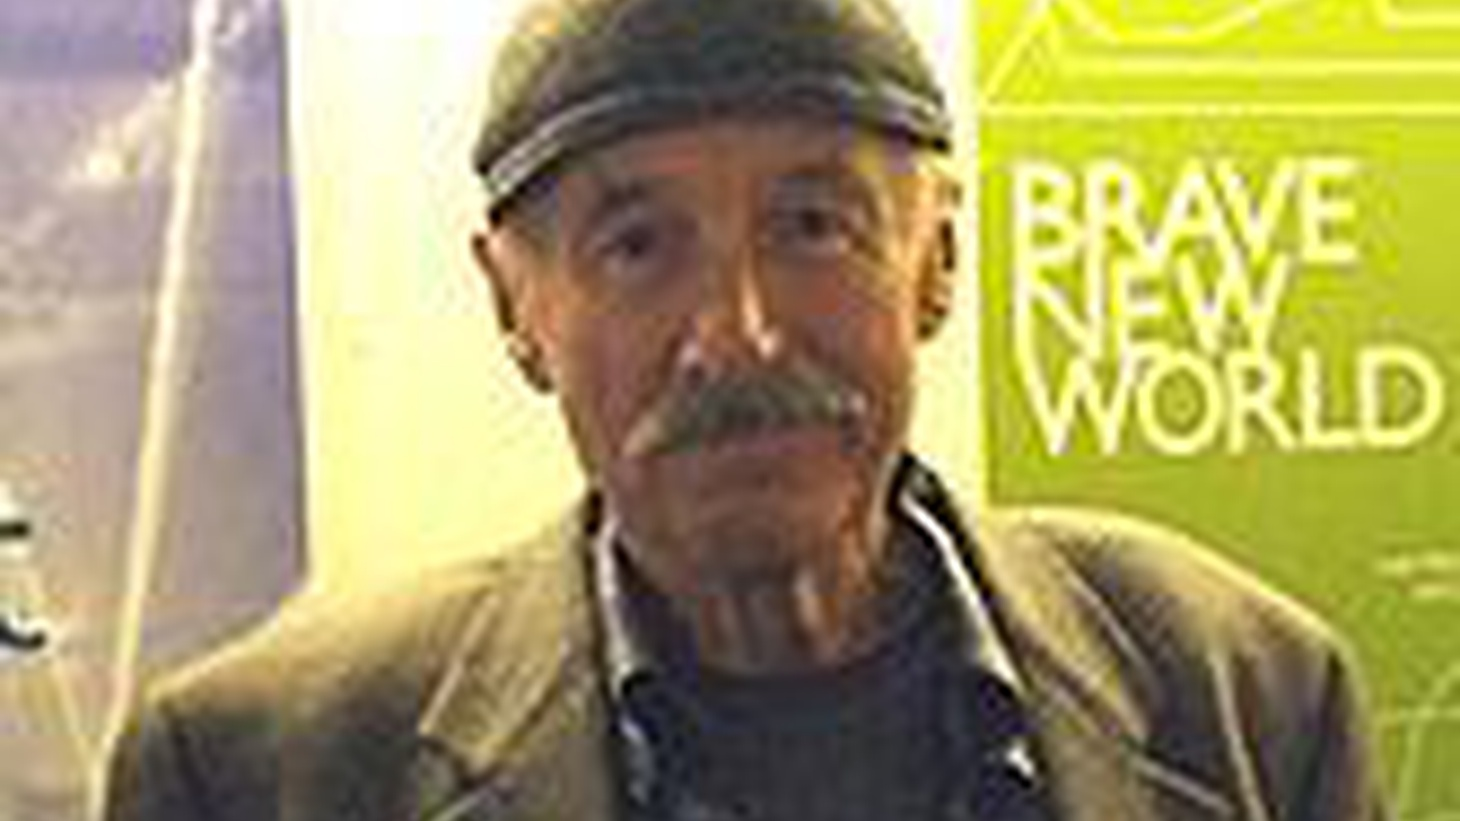 Joe Zawinul is a gifted and unusual jazz keyboardist and one of the creators of jazz-rock fusion. Zawinul talks to Tom Schnabel about being a concert pianist in his native Austria, coming to Juillard, leaving to play with Dinah Washington, Cannonball Adderley, and forming Weather Report with Wayne Shorter. Zawinul was also a major influence on Miles Davis.